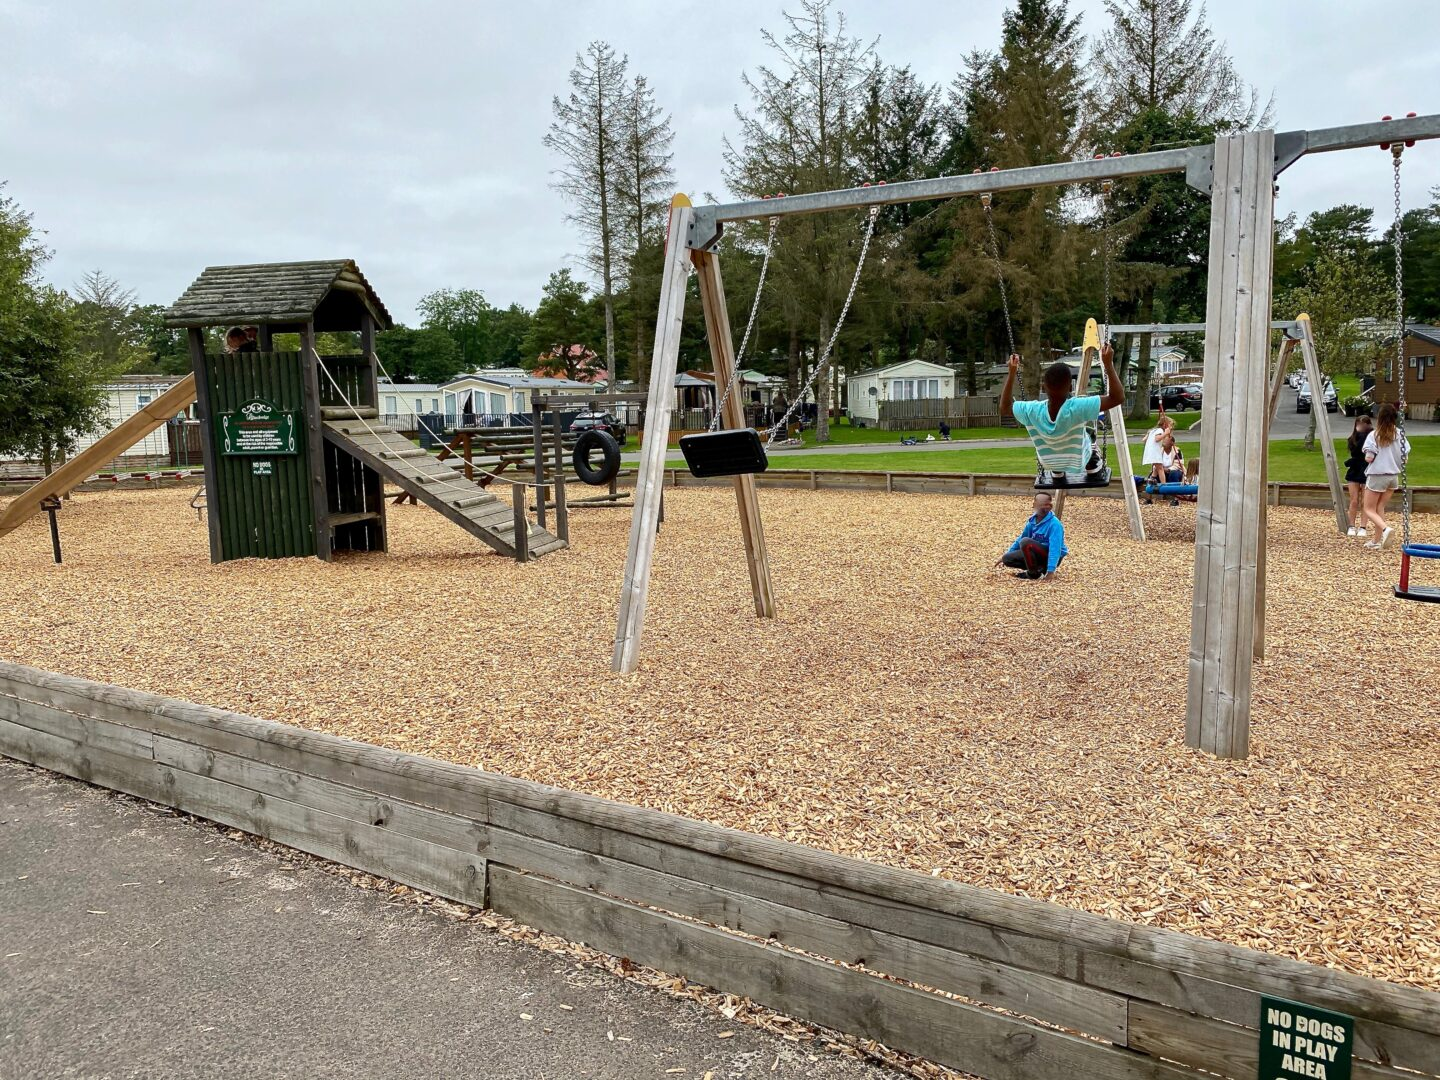 Children playing on swings in a play park